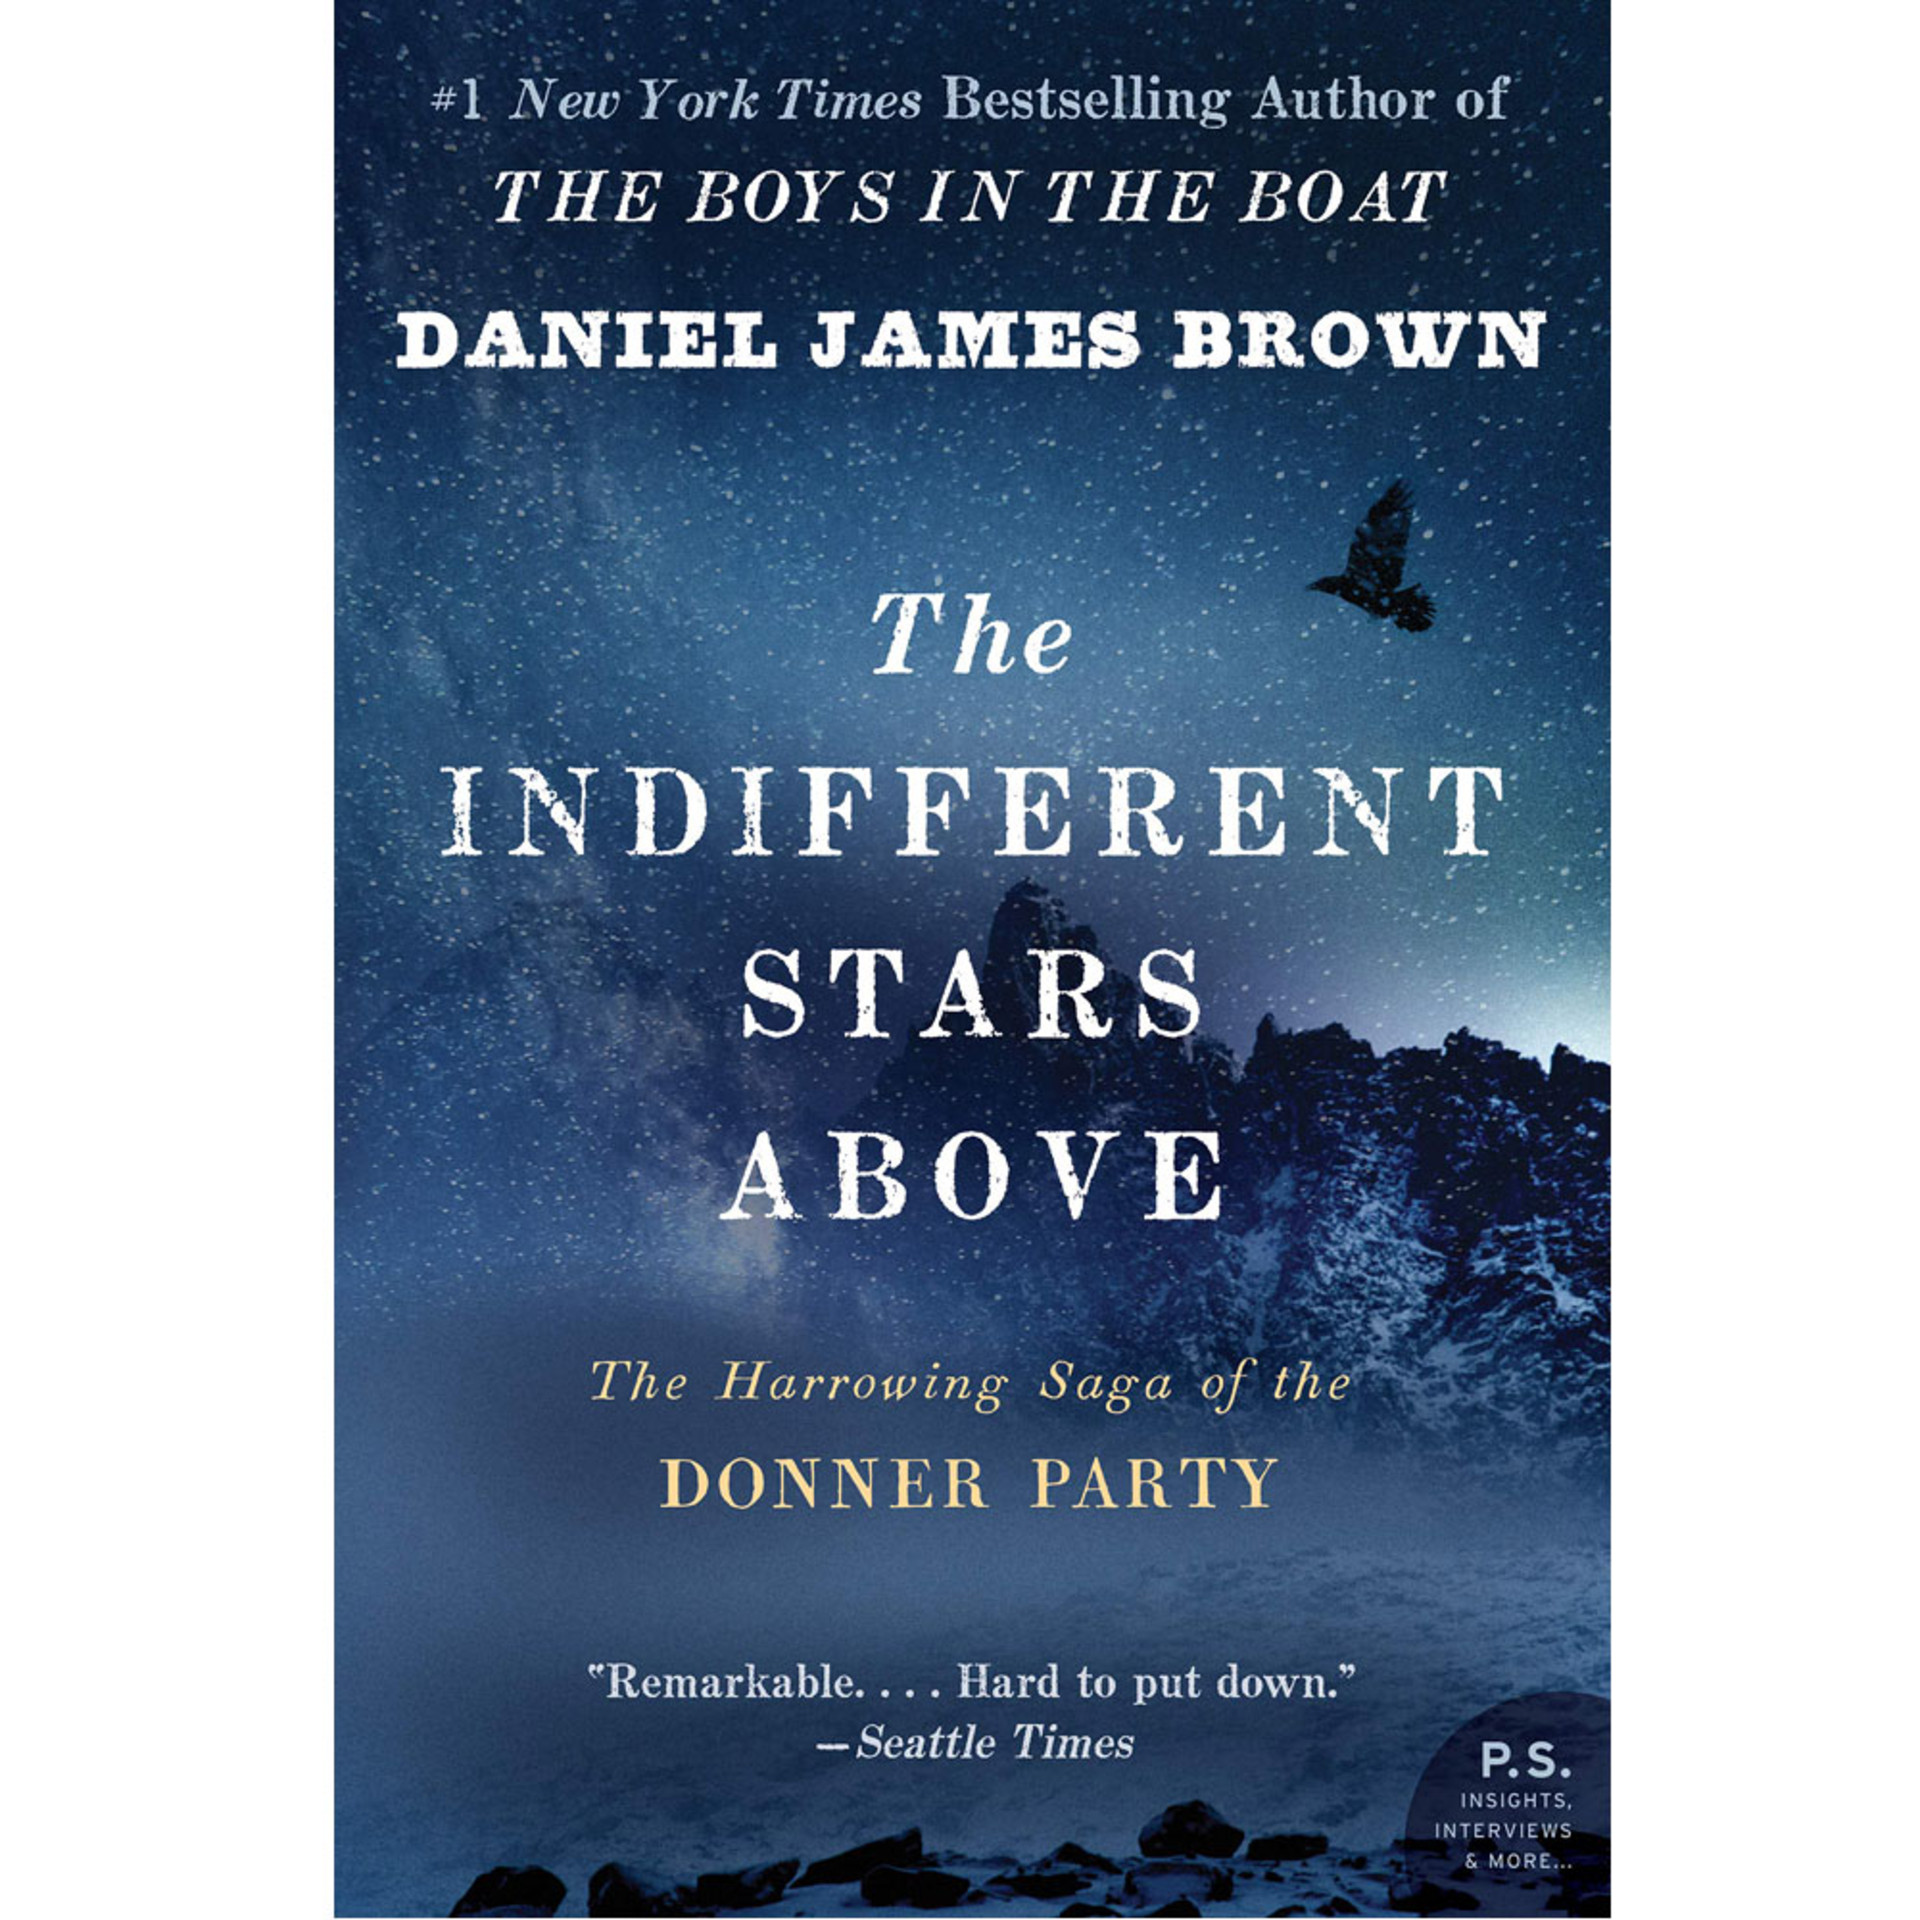 The Indifferent Stars Above: The Harrowing Saga of a Donner Party Bride by Daniel James Brown